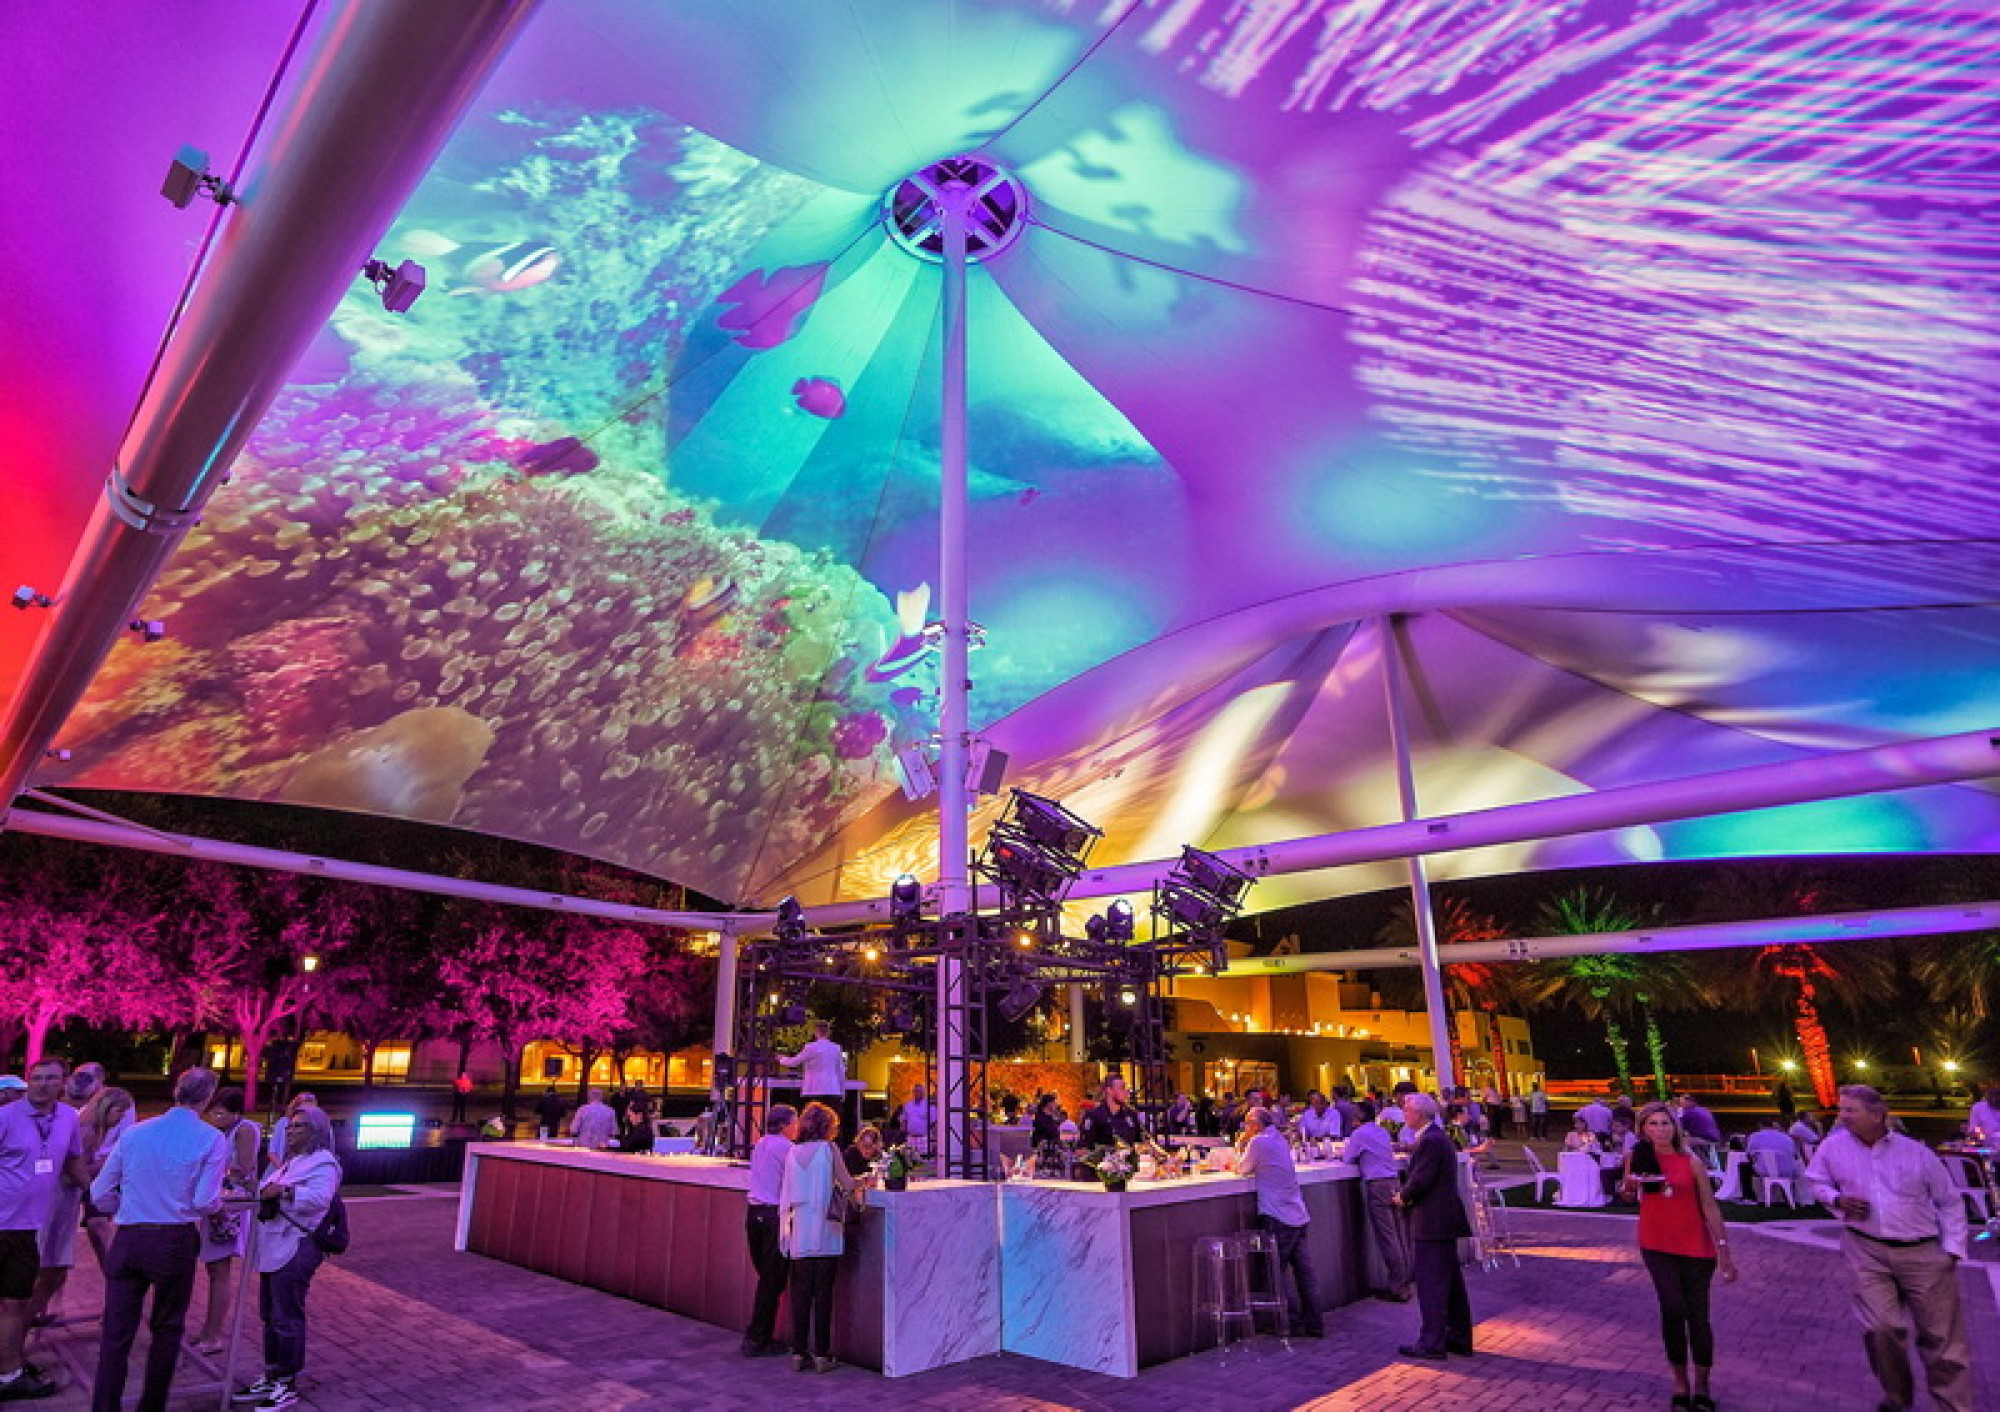 All the Elements: Brand Building through Immersive Design